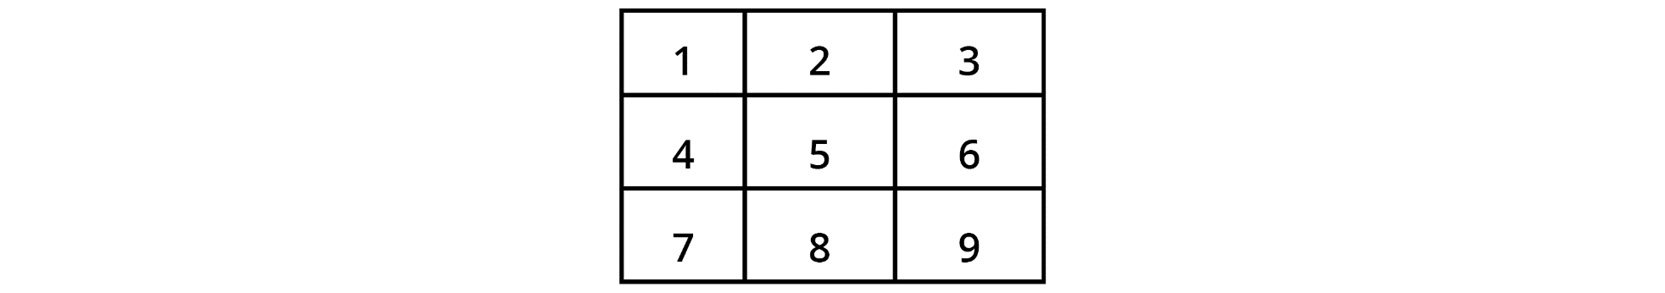 Figure 1.12: 3 x 3 matrix